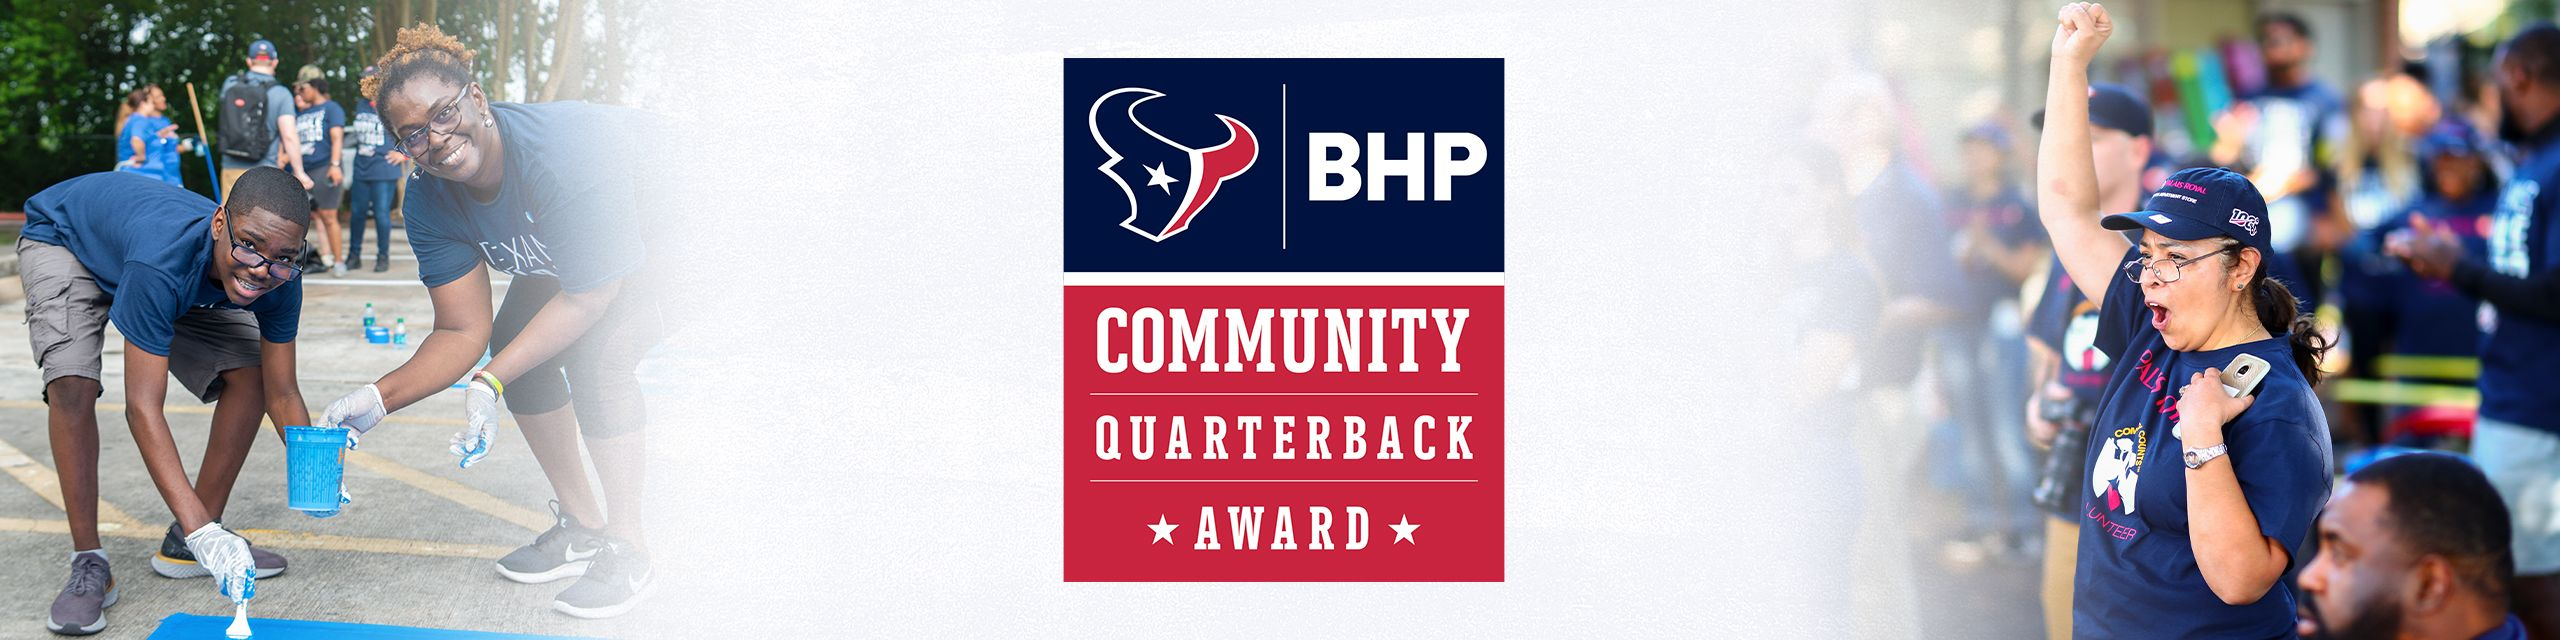 BHP Community Quarterback Award